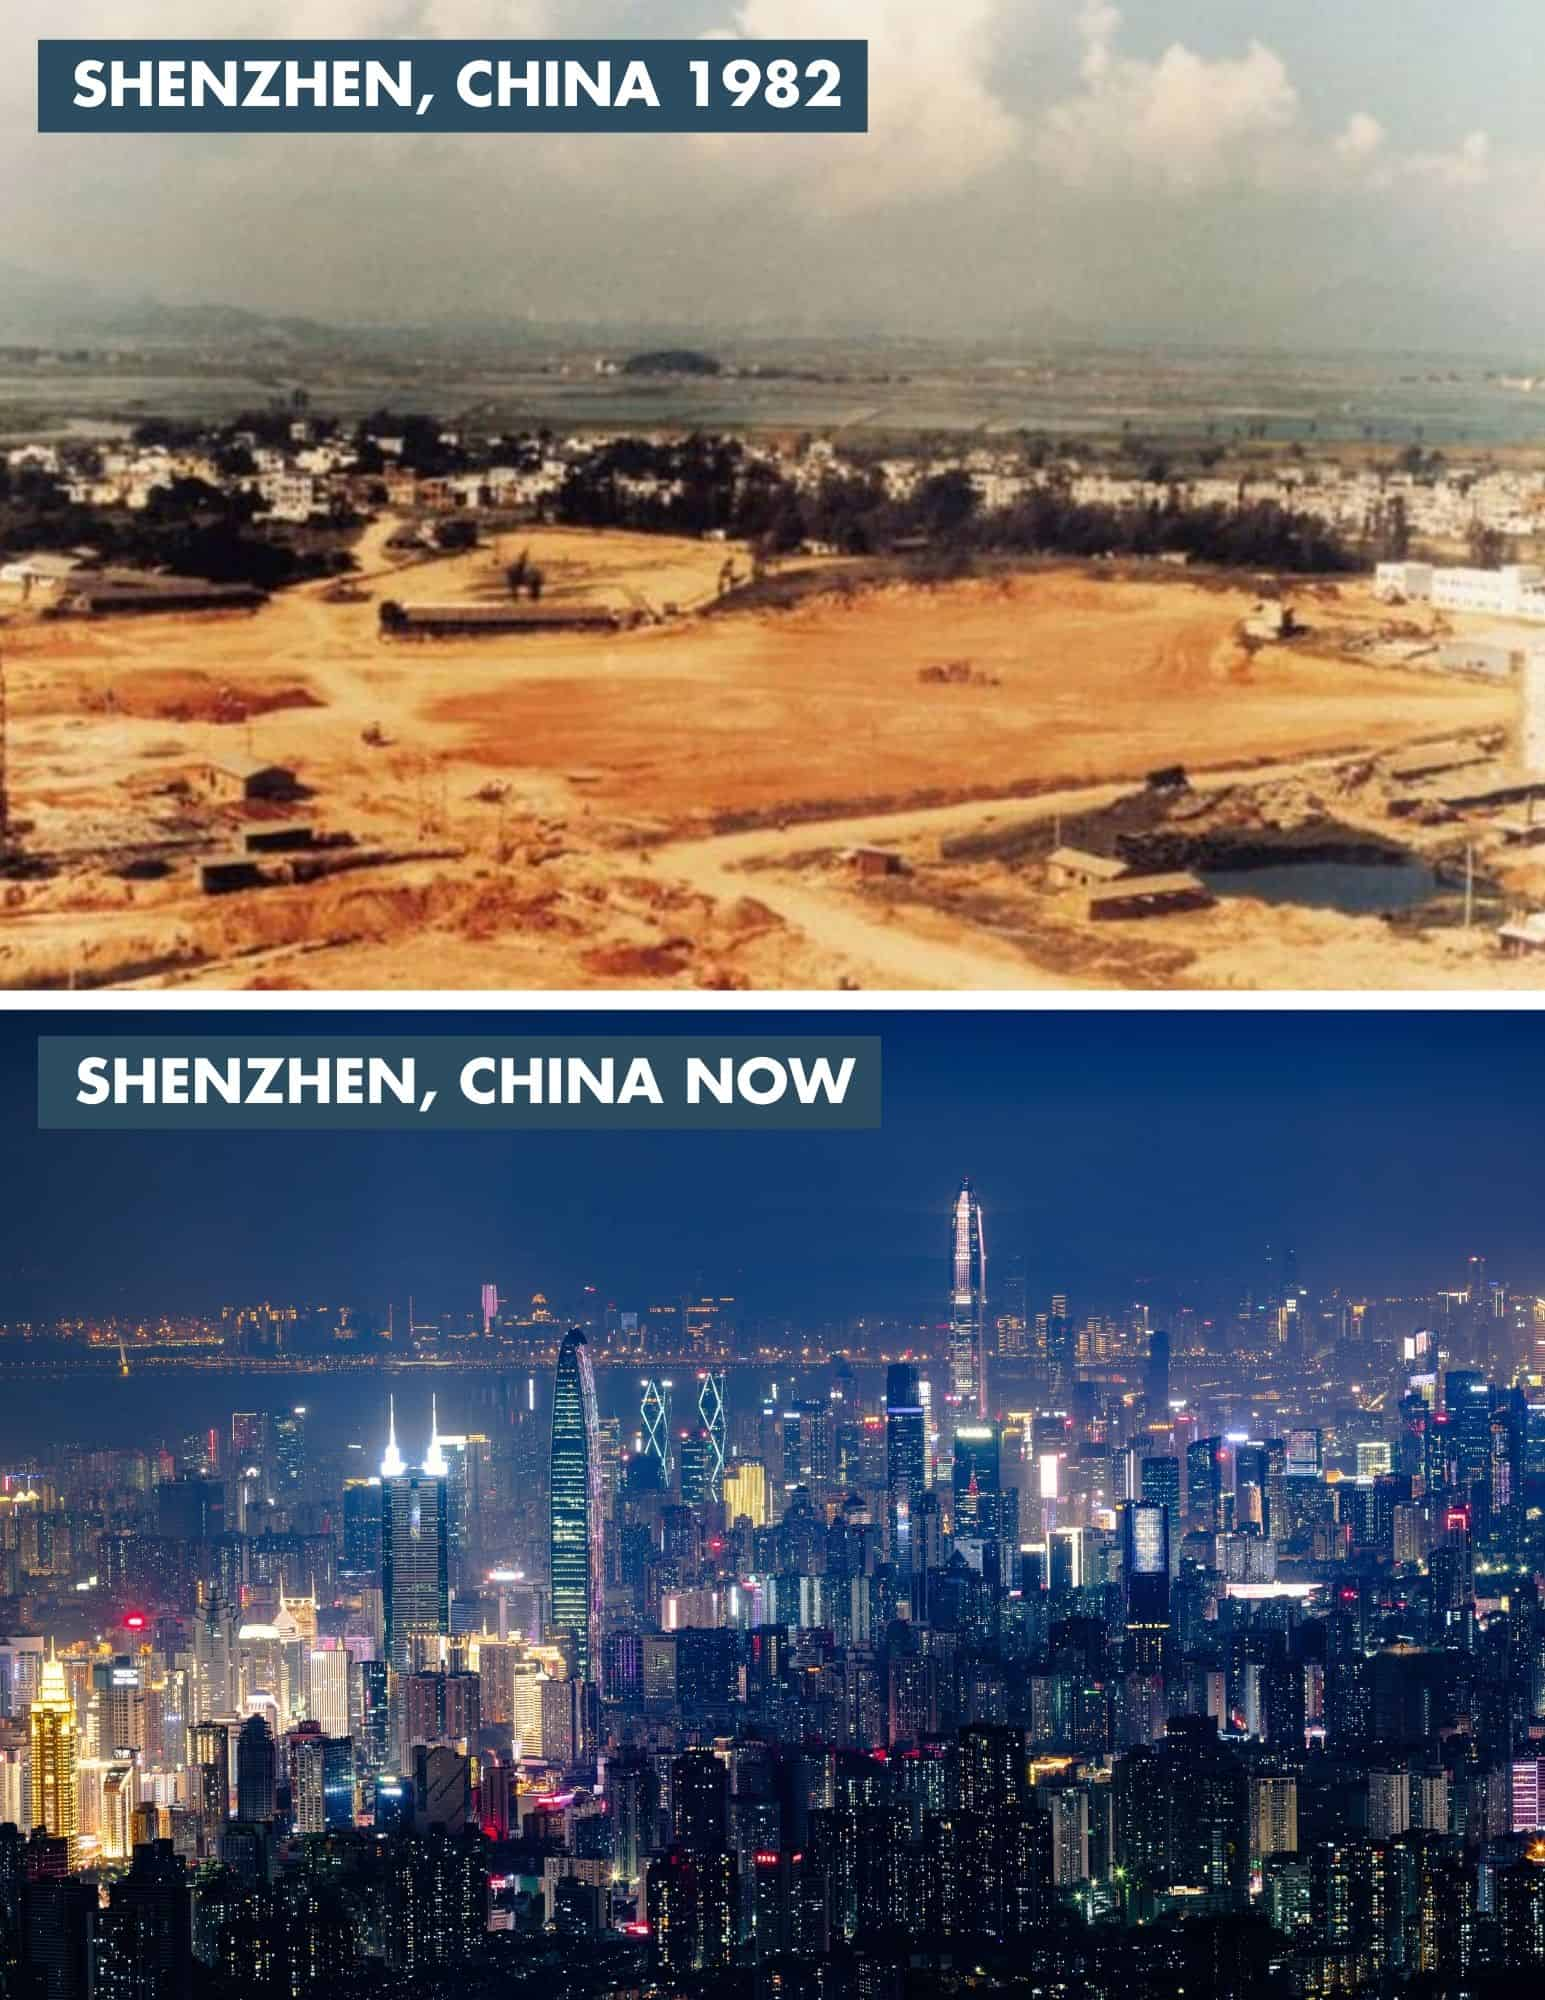 shenzhen china then and now